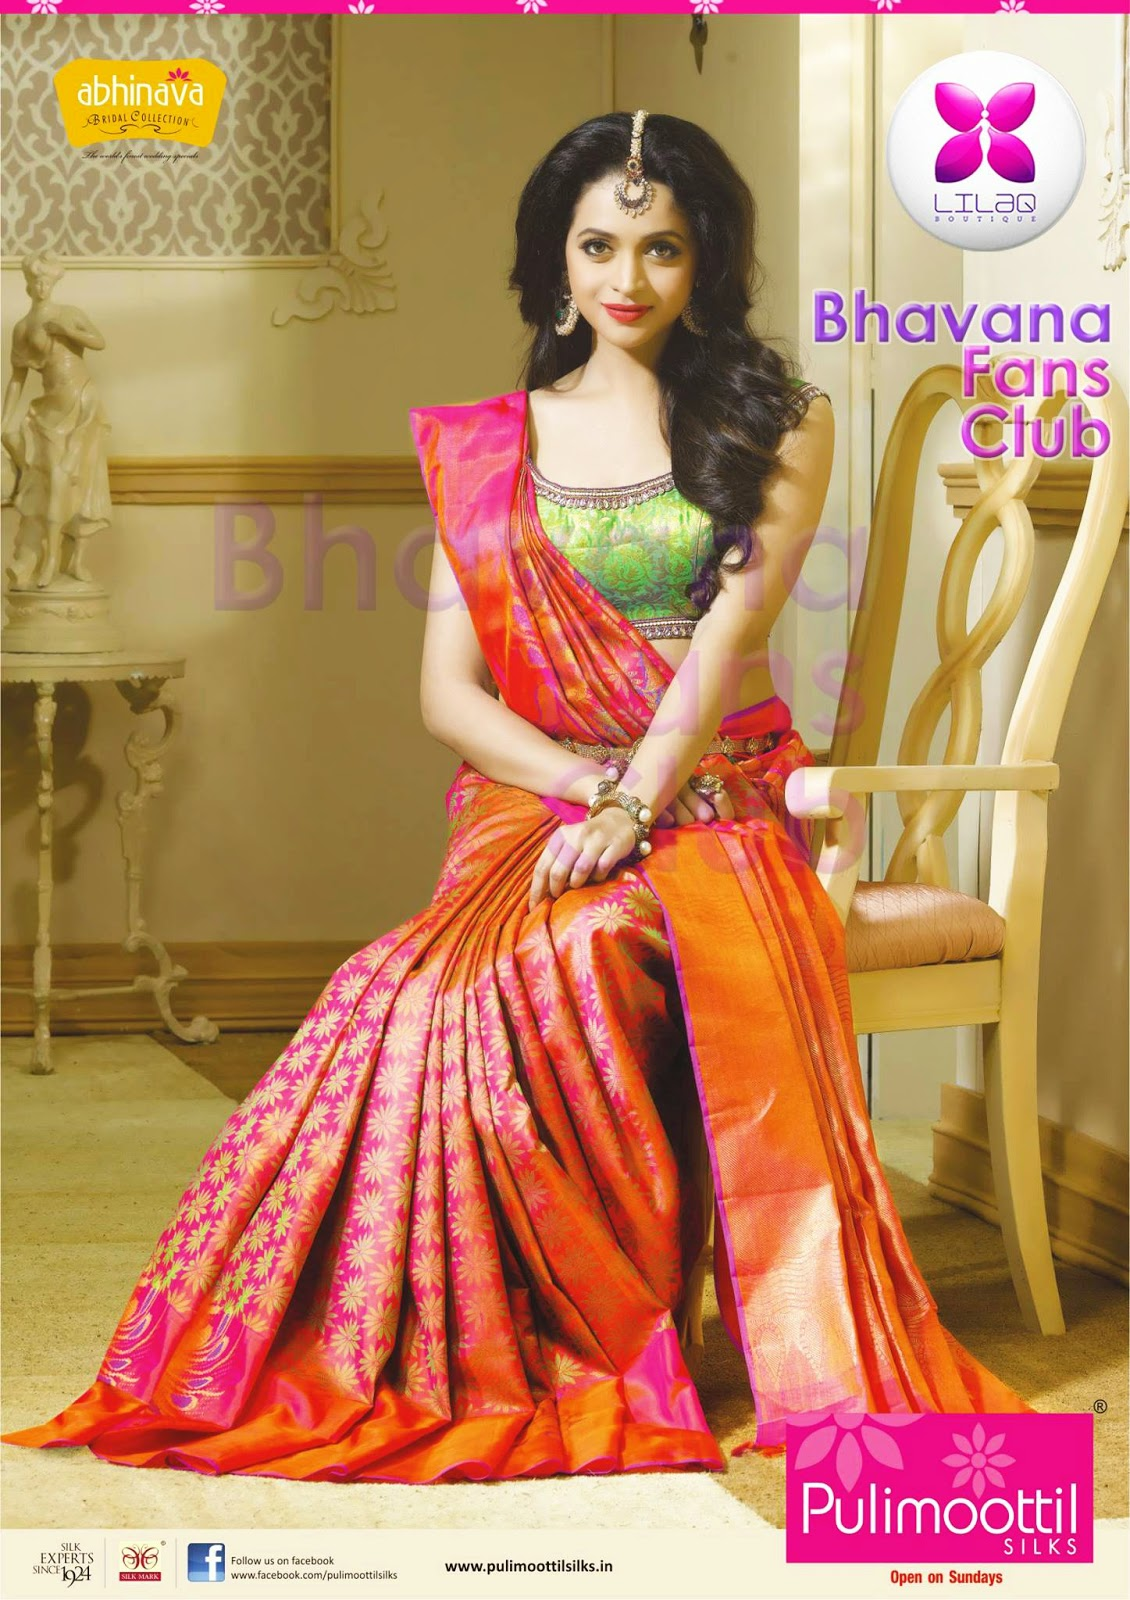 New pulimoottil silks advertisement actress bhavana fans club print email altavistaventures Image collections